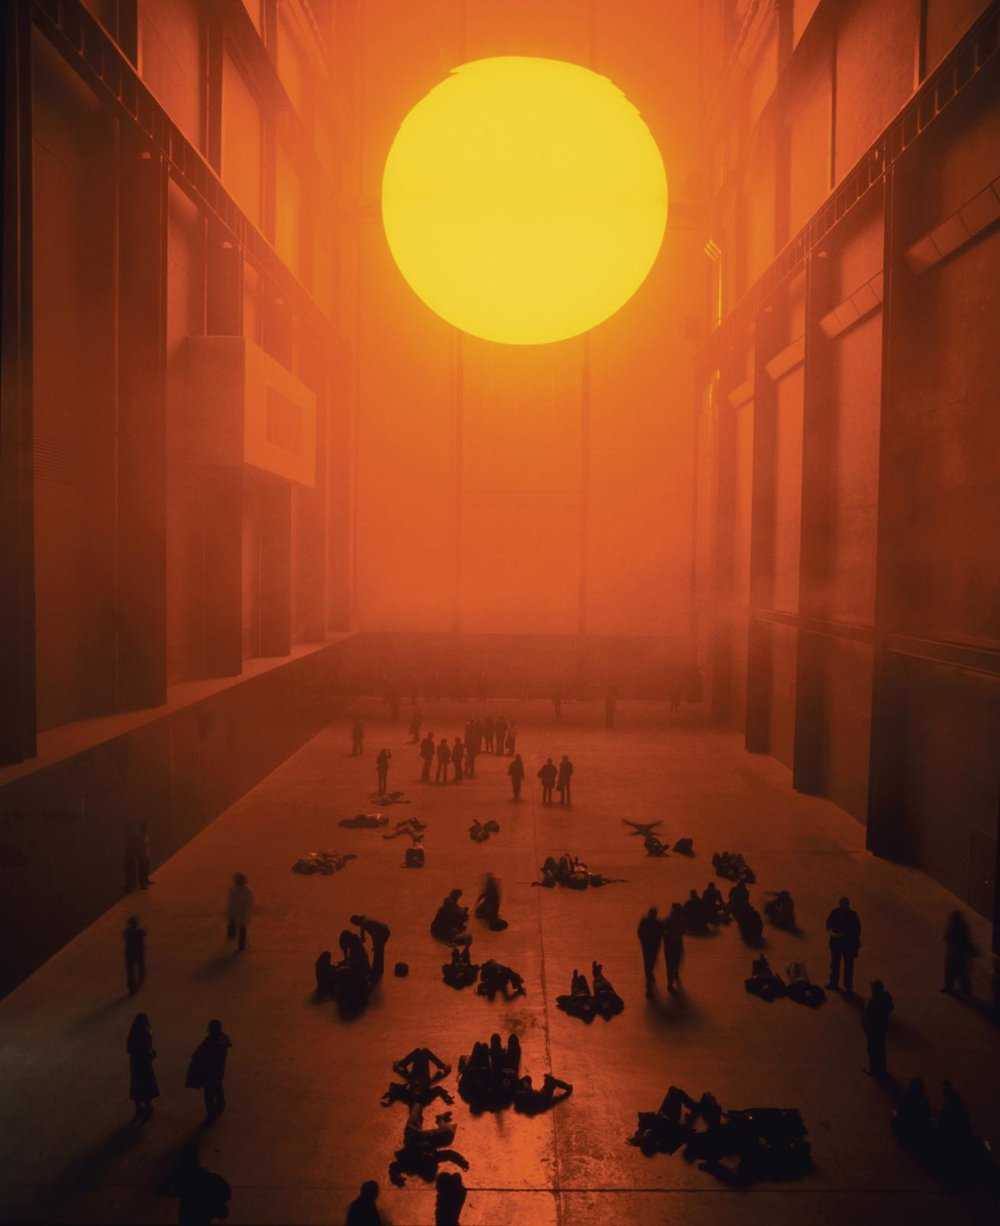 Olafur Eliasson; The weather project, 2003; Installation view: Tate Modern, London, 2003; Photo: Tate Photography (Andrew Dunkley & Marcus Leith) © 2003 Olafur Eliasson